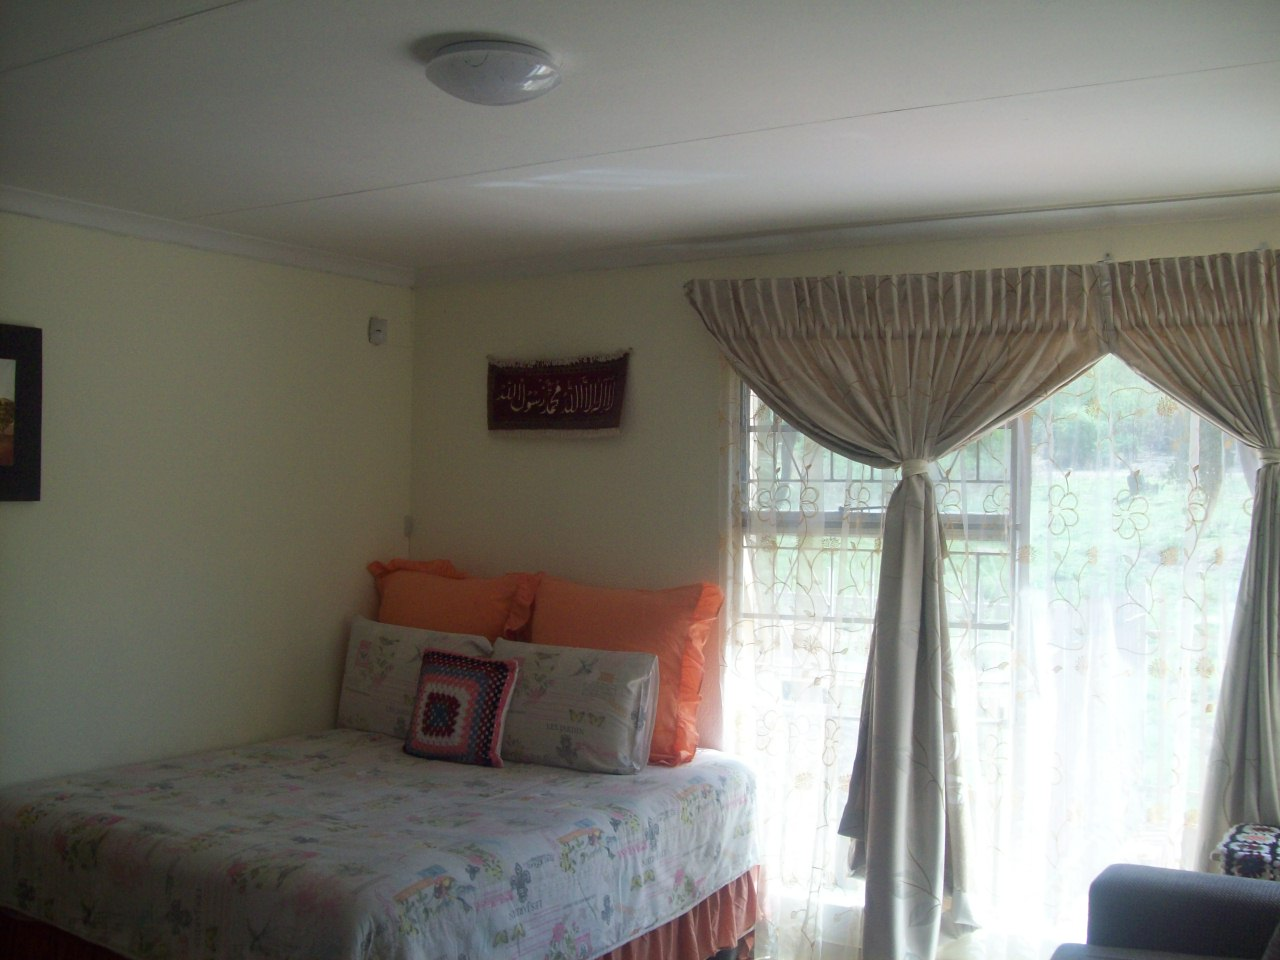 3 Bedroom Townhouse for sale in Bassonia ENT0071278 : photo#29